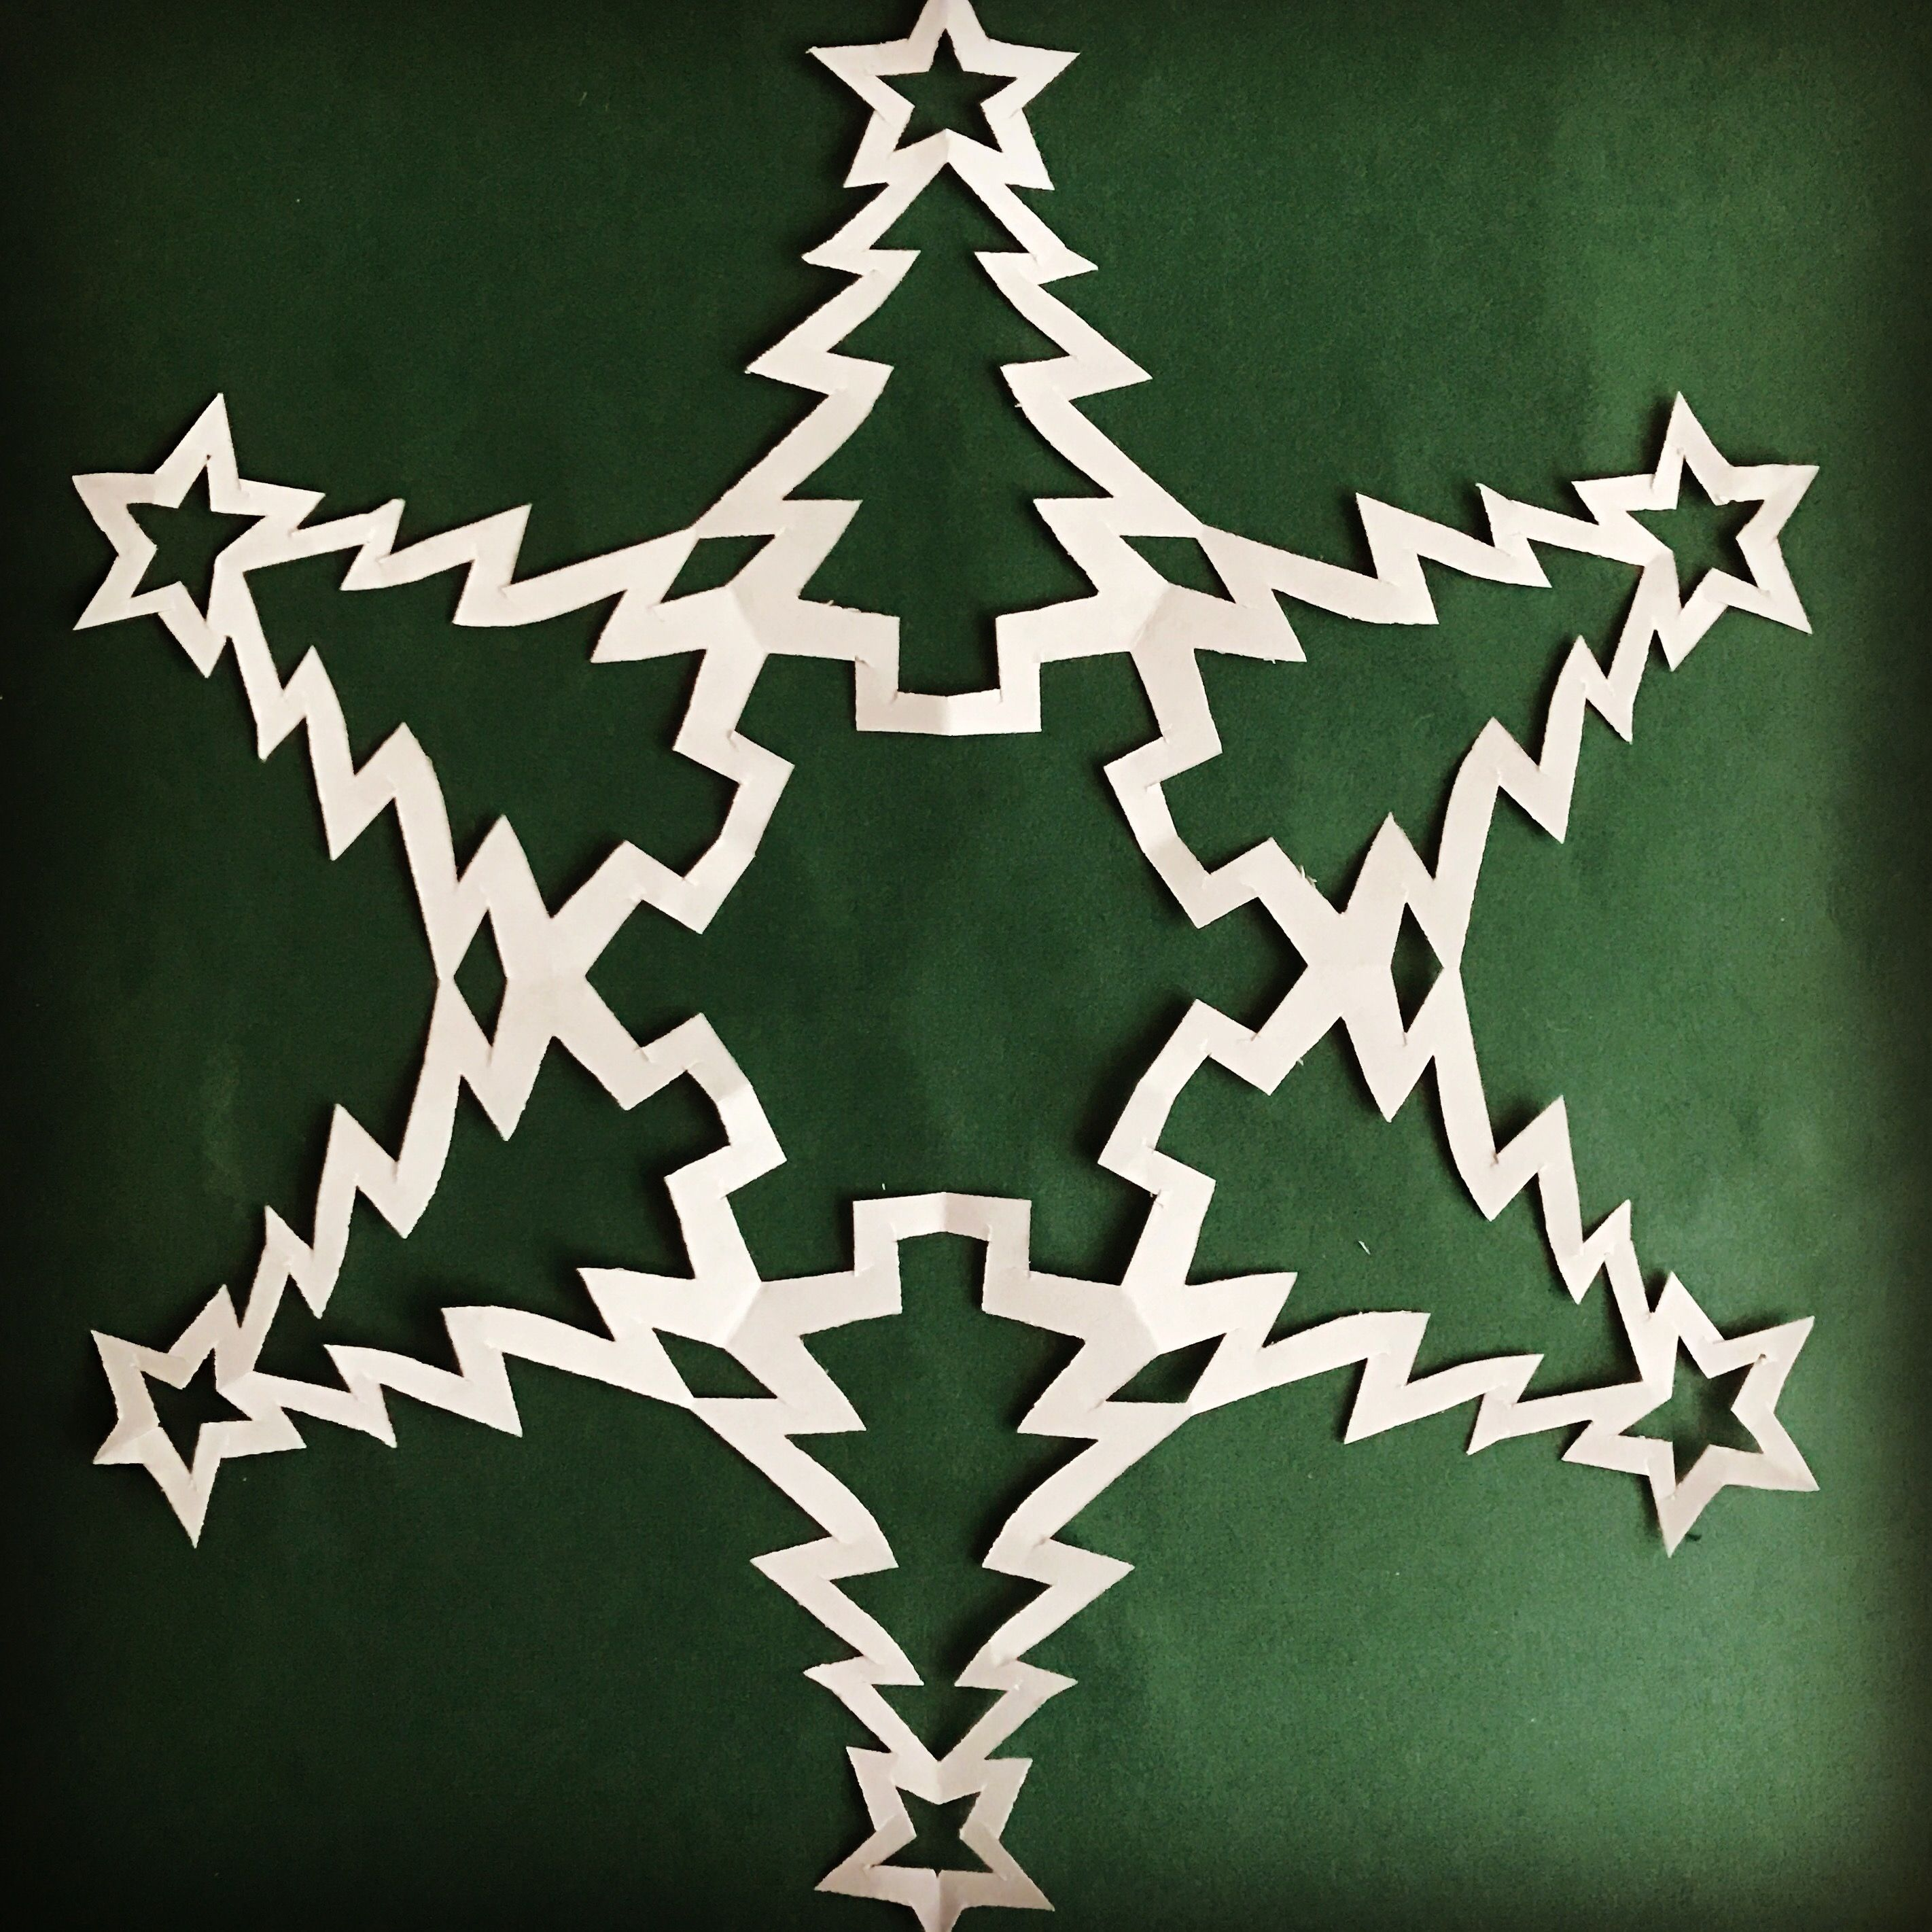 Snowflake Patterns Winter Craft Paper Snowflakes Cut Out